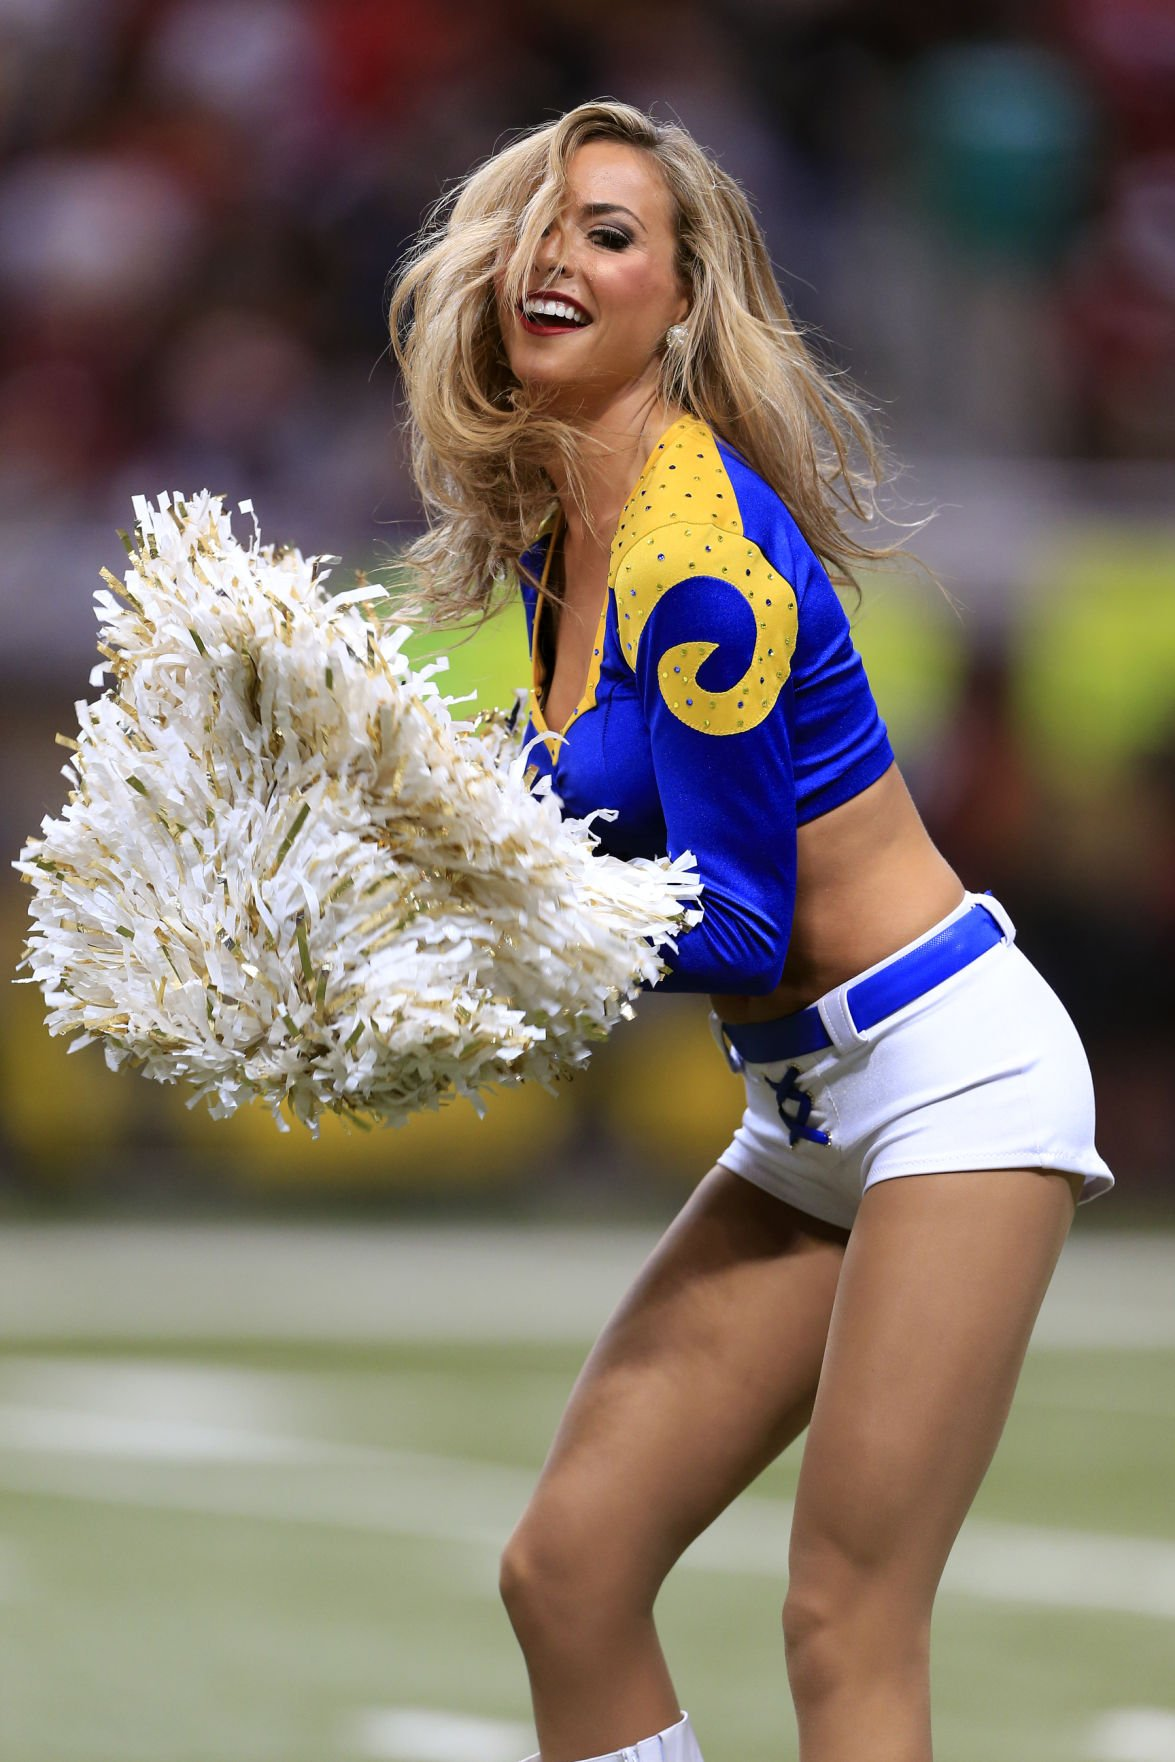 Photos Nfl Cheerleaders Things To Do In Tucson Tucson Com